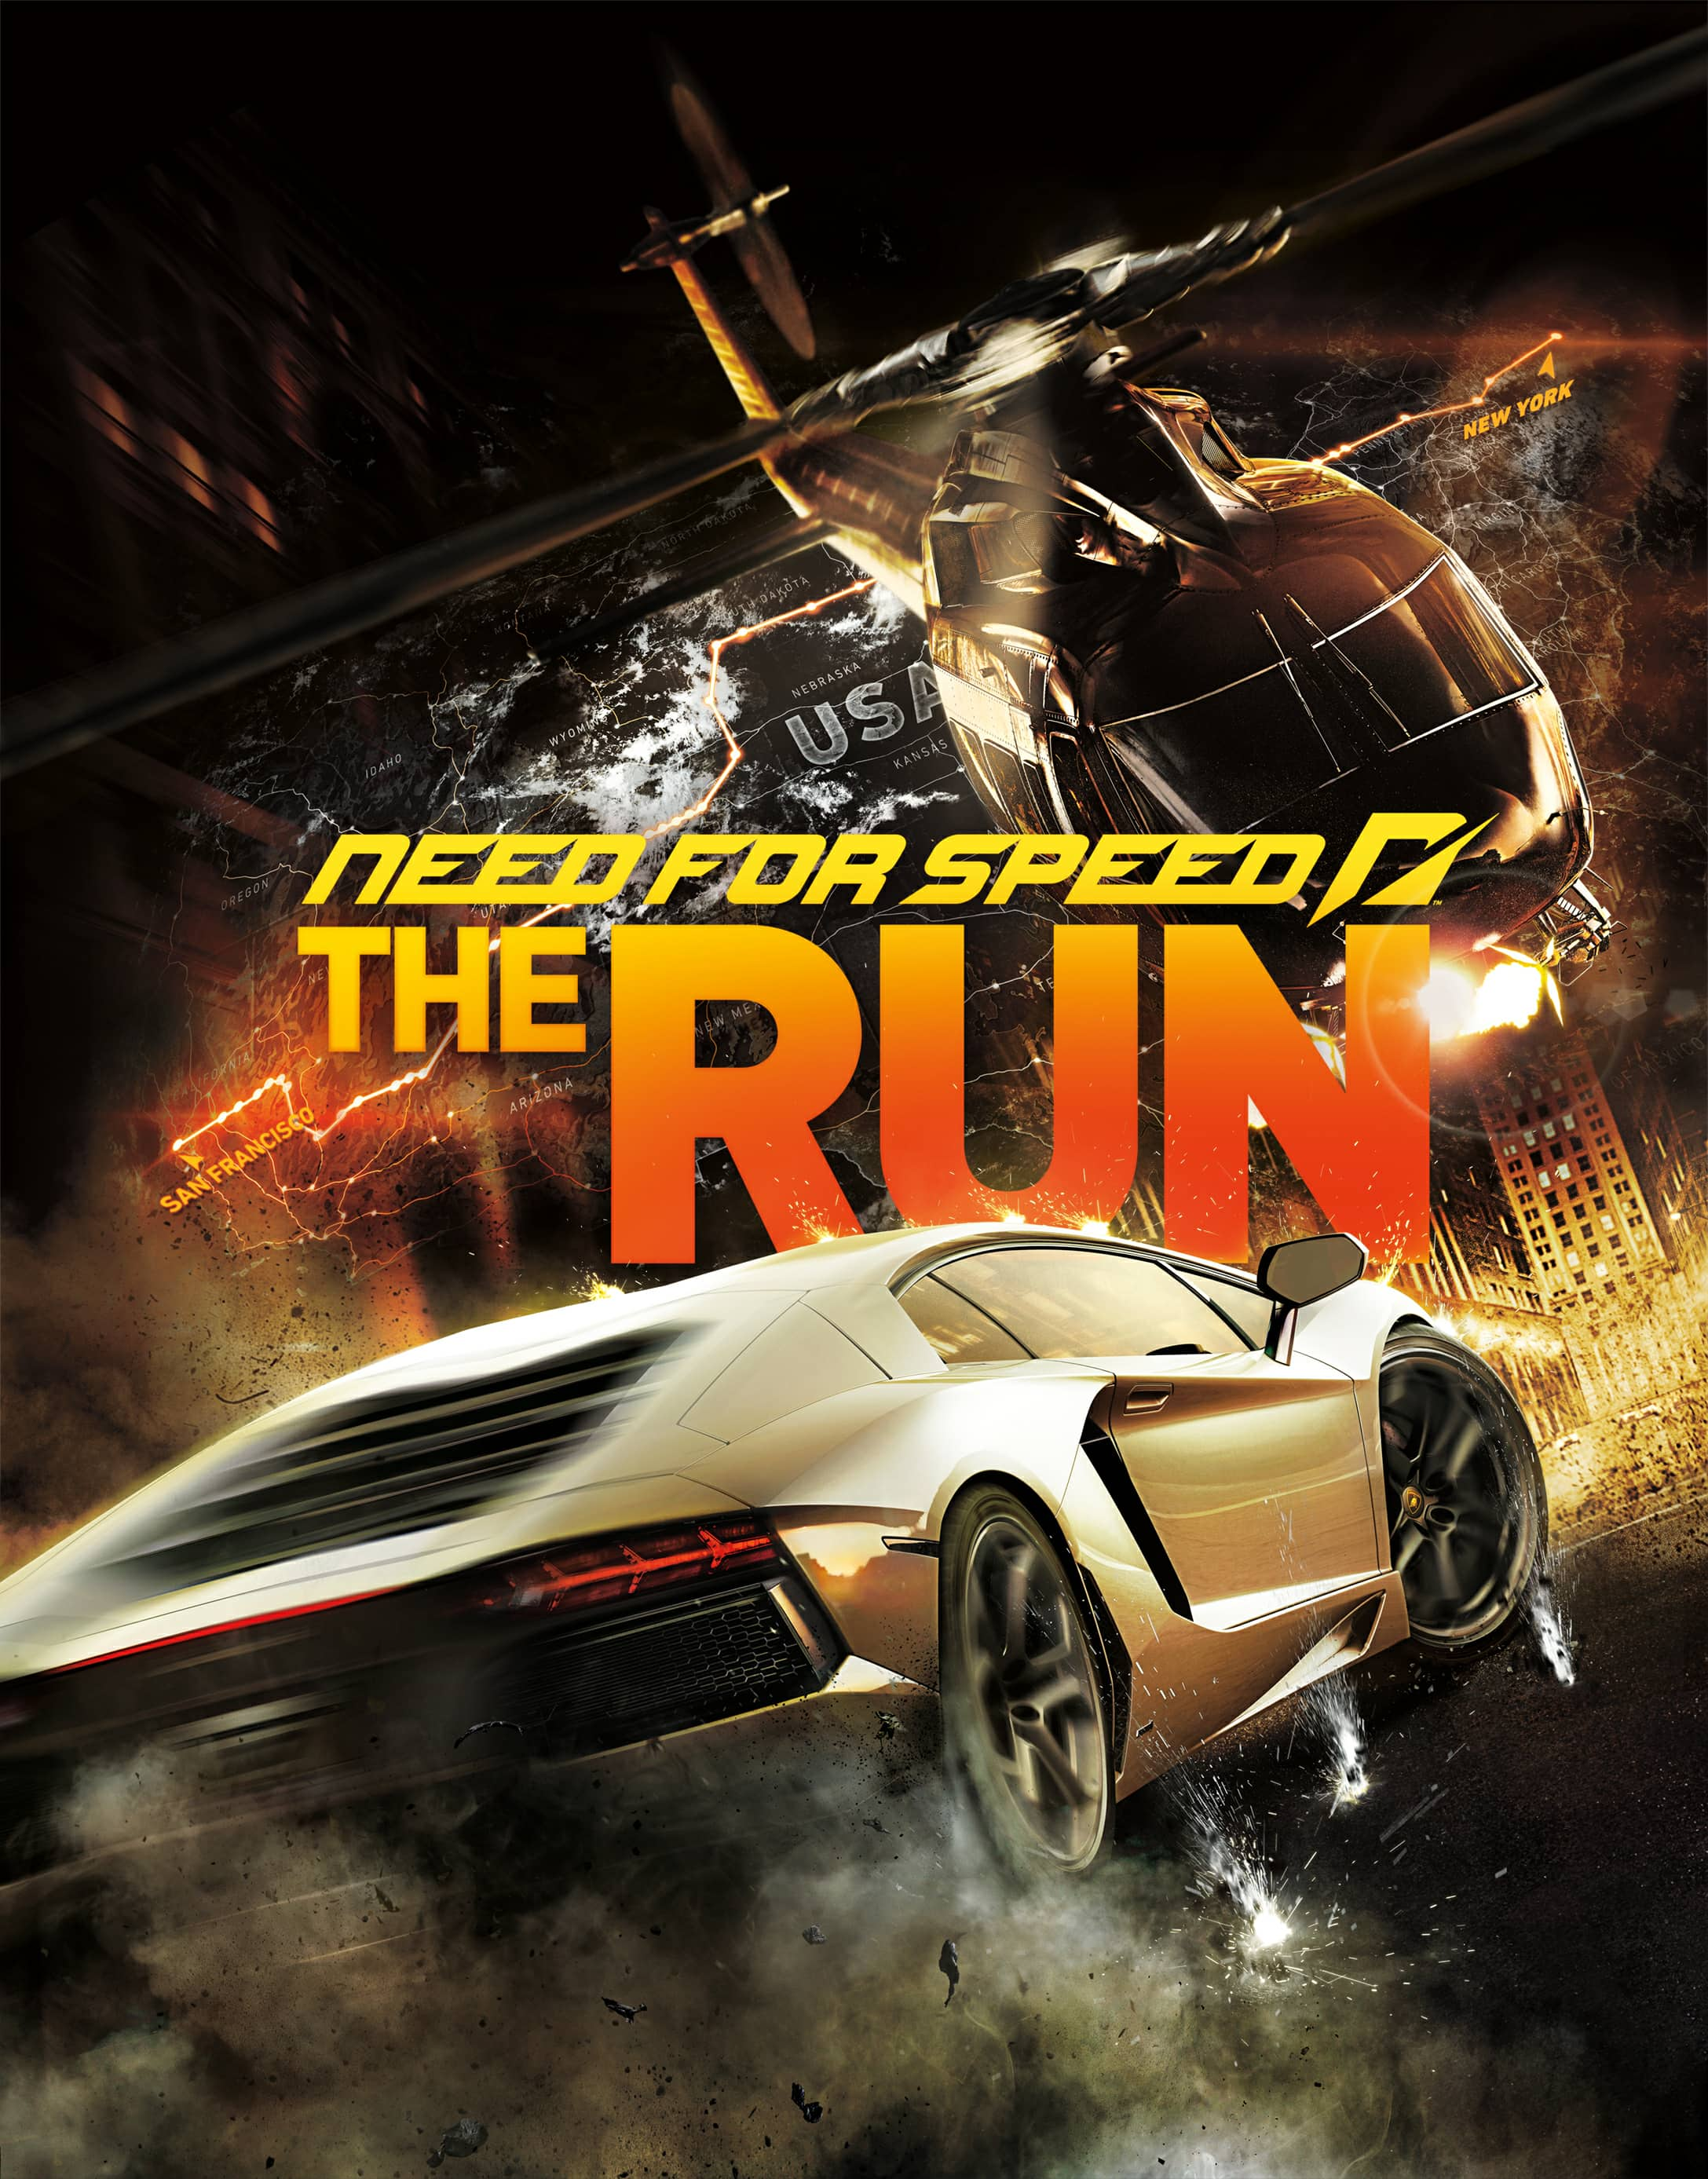 need for speed full movie free download